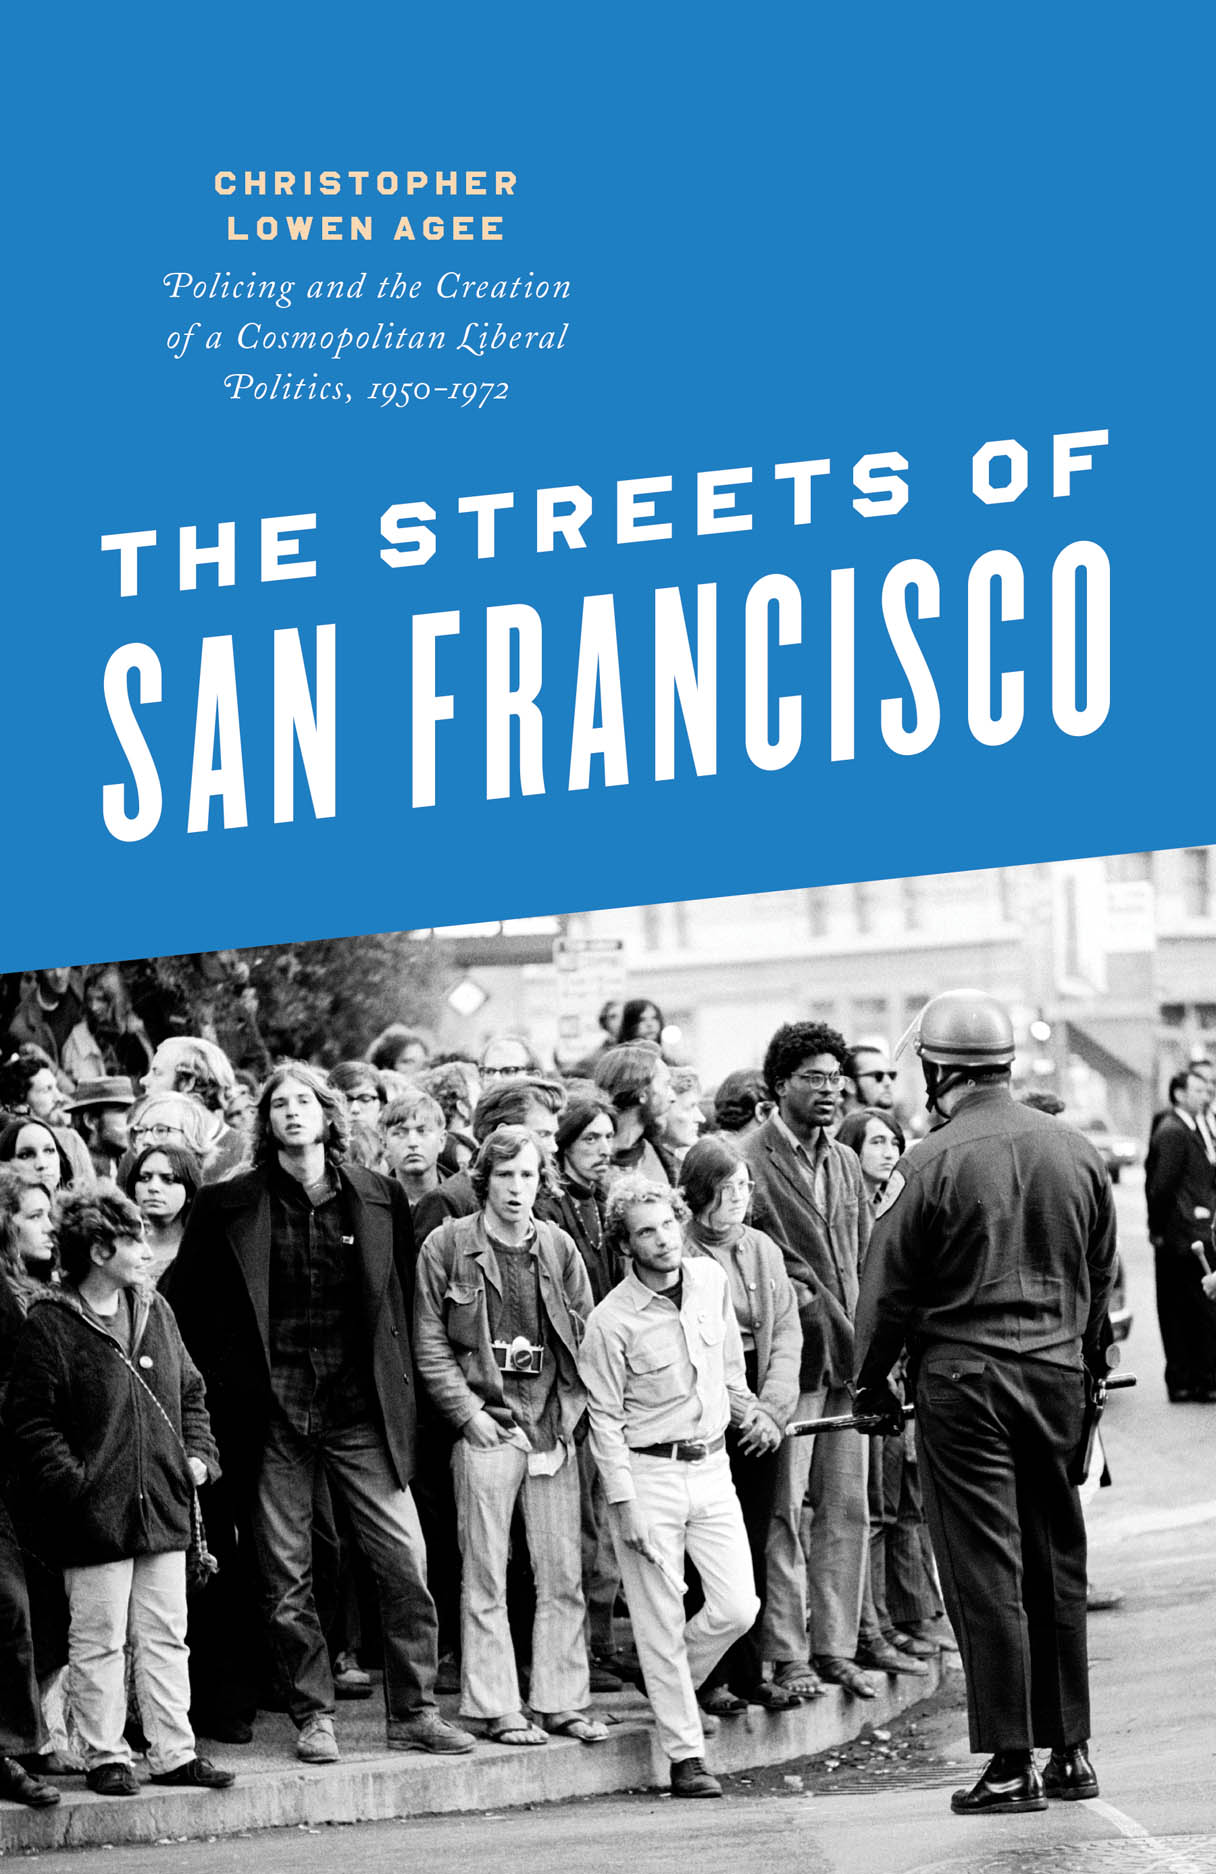 The Streets of San Francisco: Policing and the Creation of a Cosmopolitan Liberal Politics, 1950-1972